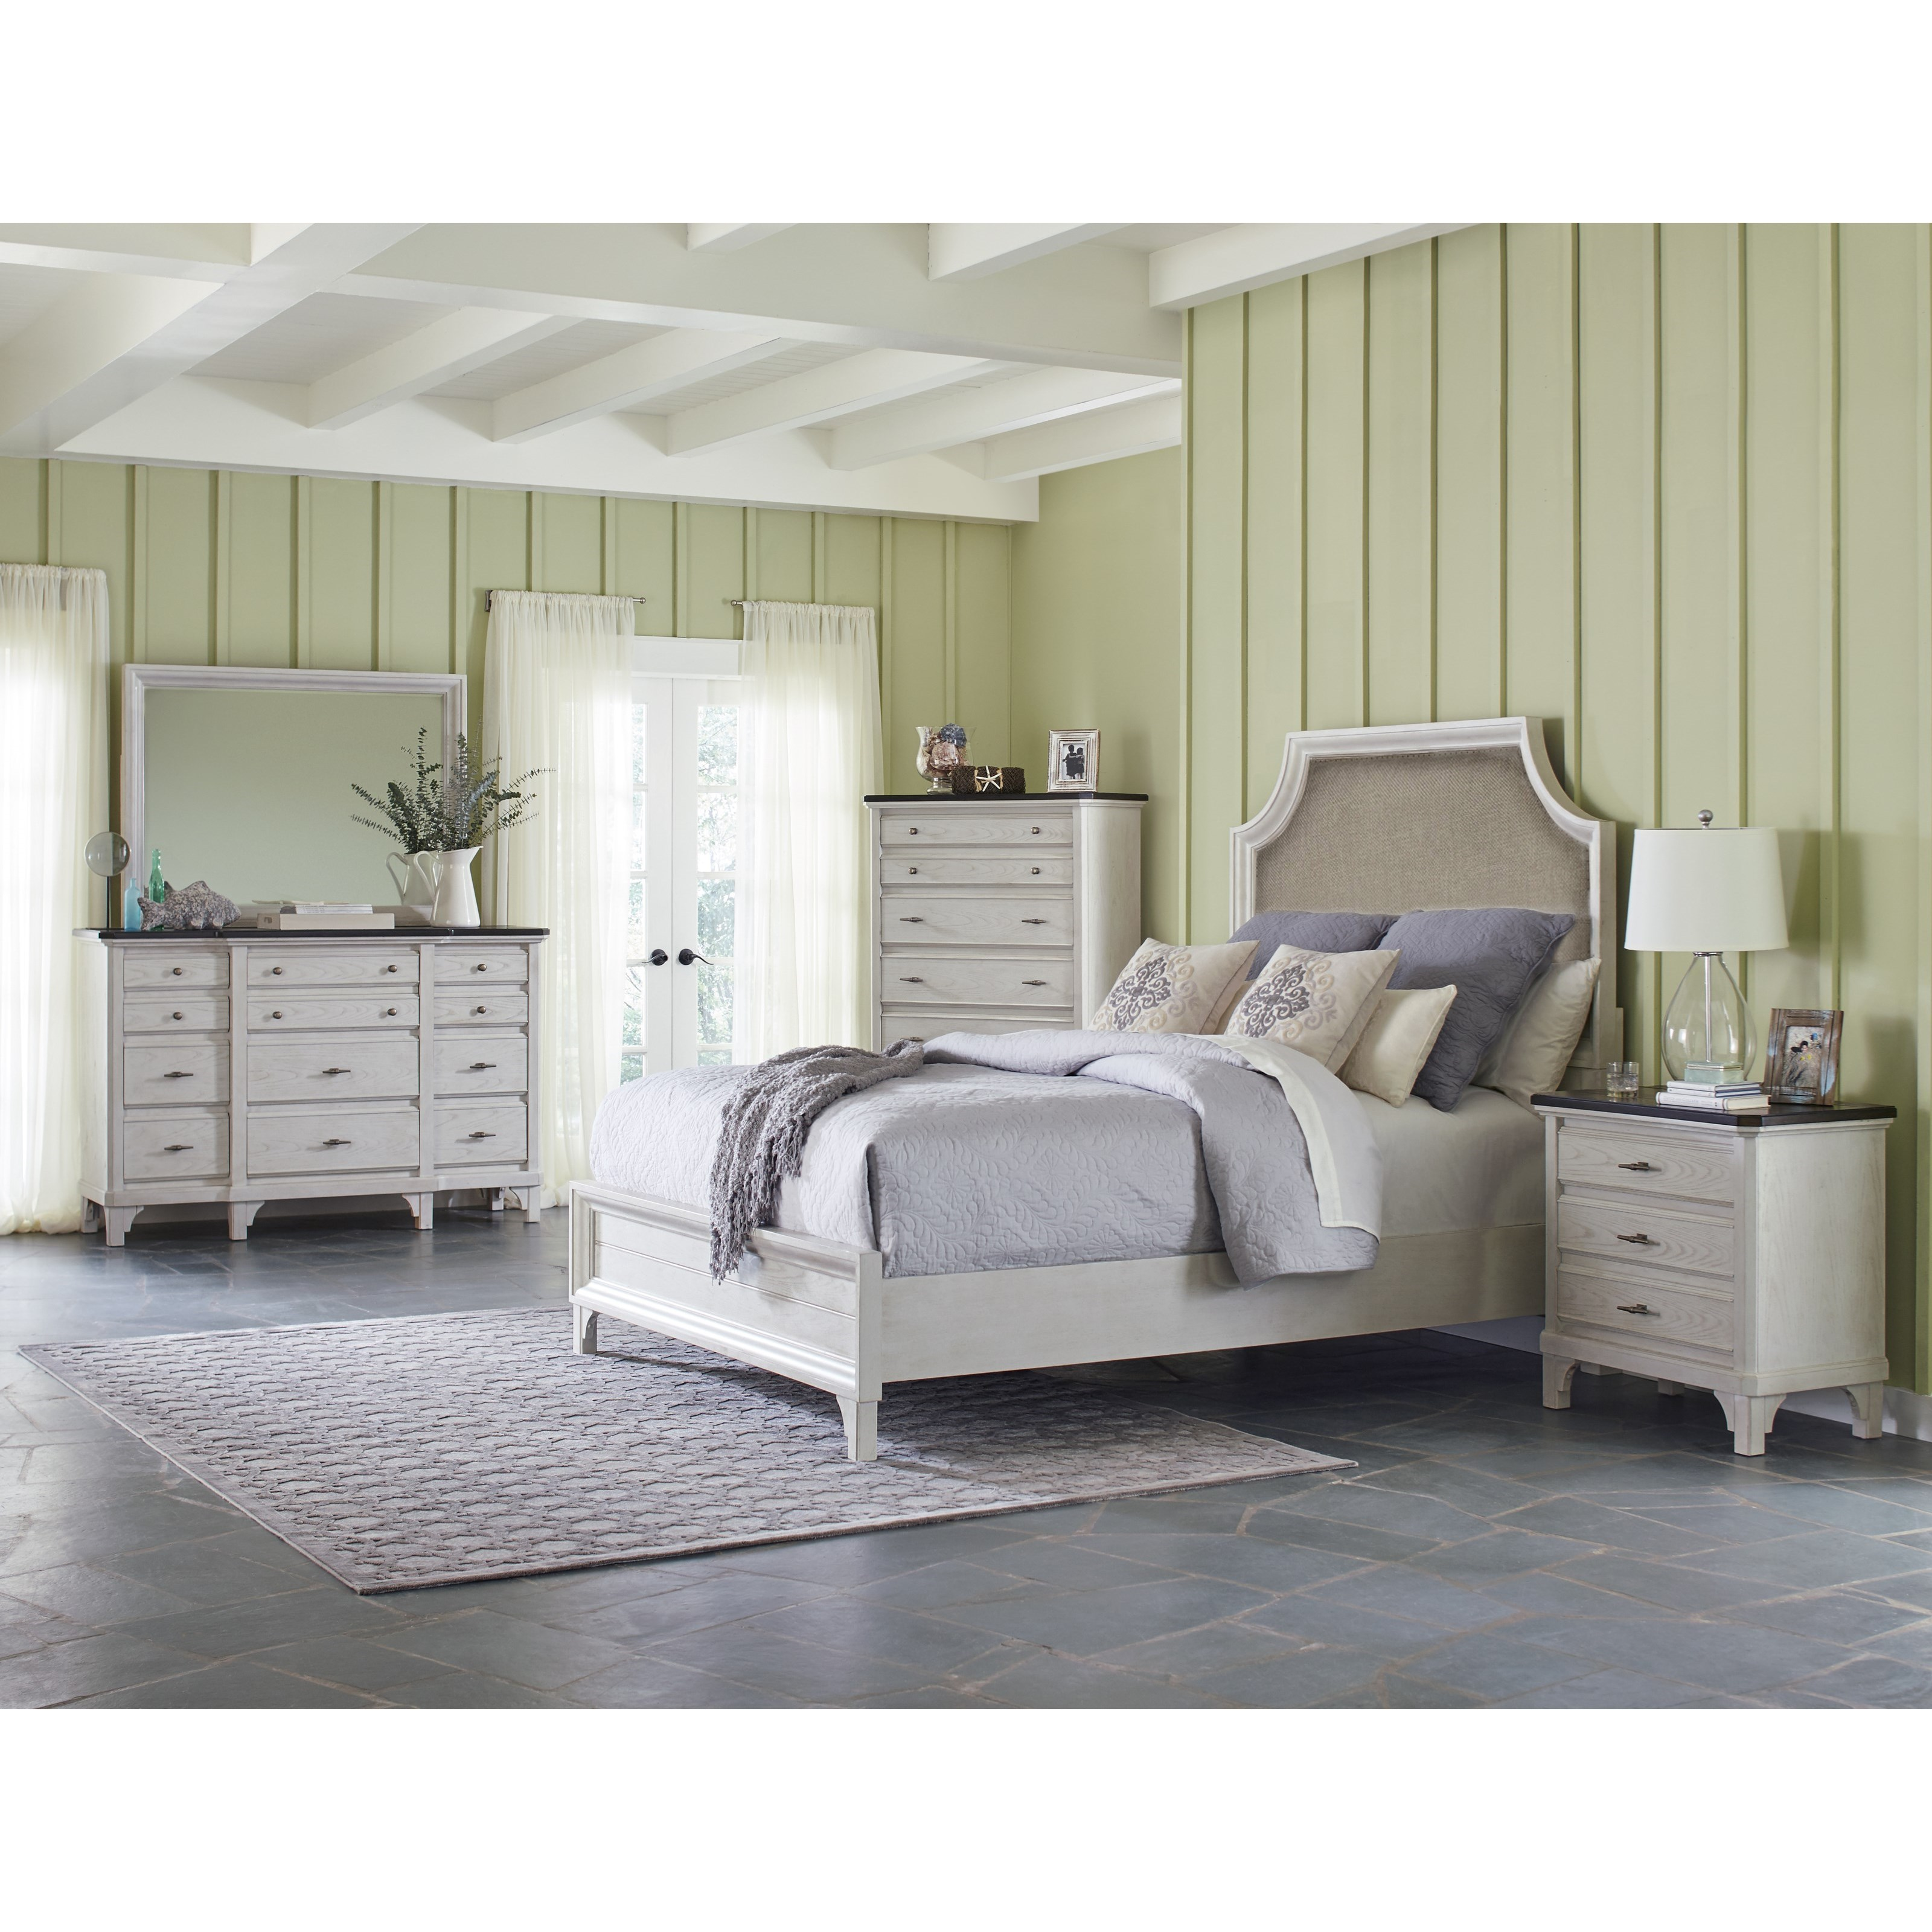 Mystic Cay King Bedroom Group by Avalon Furniture at Wilcox Furniture